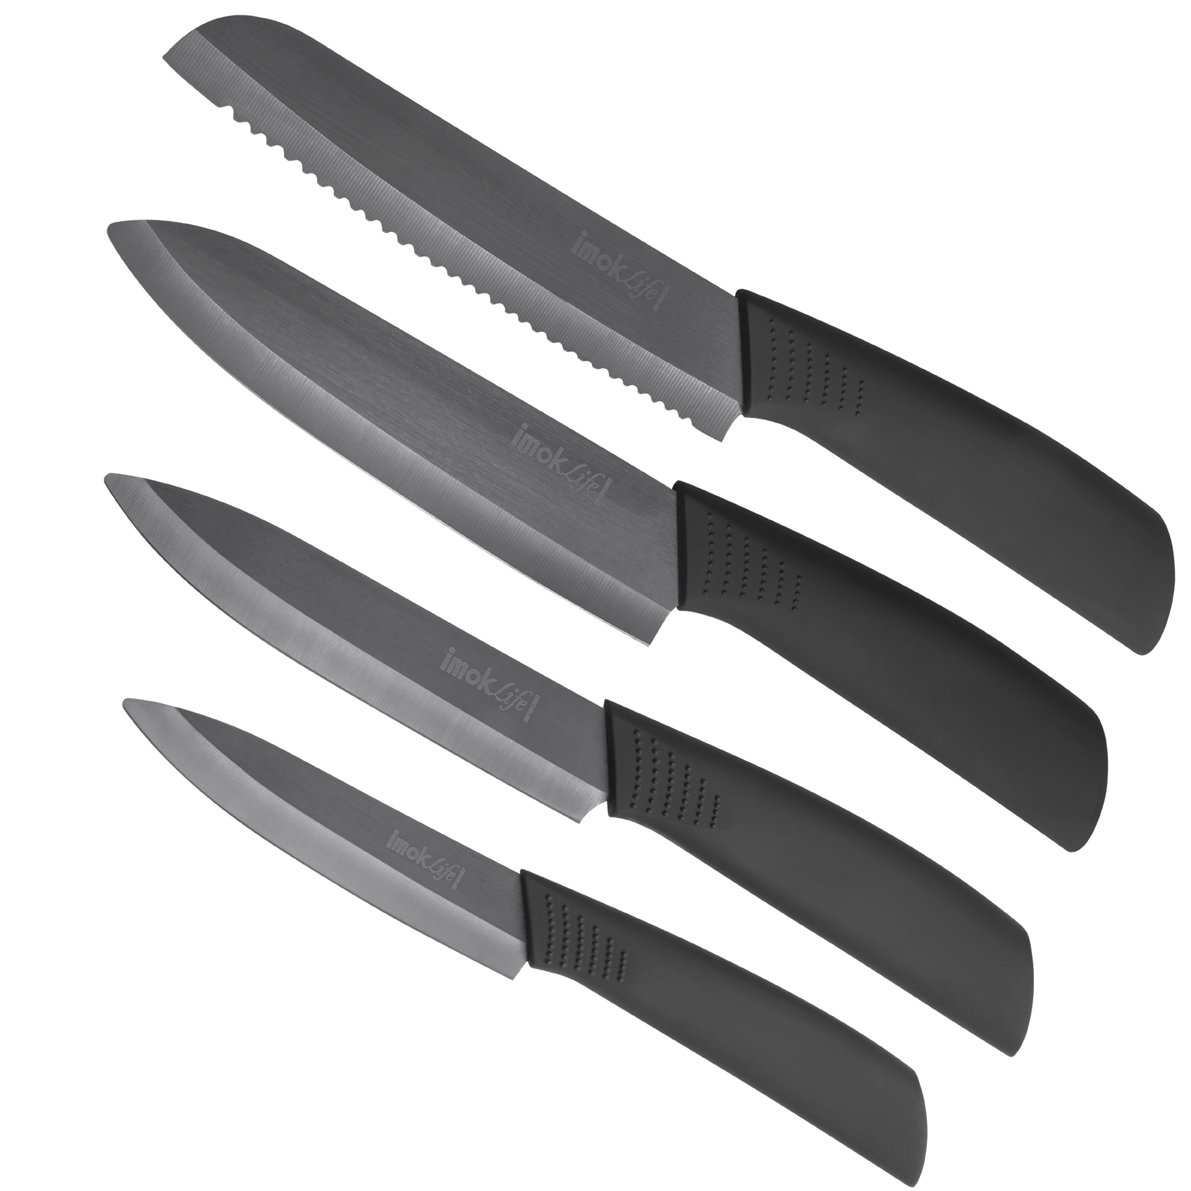 imokLife Ceramic Knife Set (4 Pieces) Kitchen Knives with Safety Sheaths Super Sharp and Never Rust(6'' Bread Knife, 6'' Chef Knife, 6'' Utility Knife, 4'' Fruit Knife ), Black